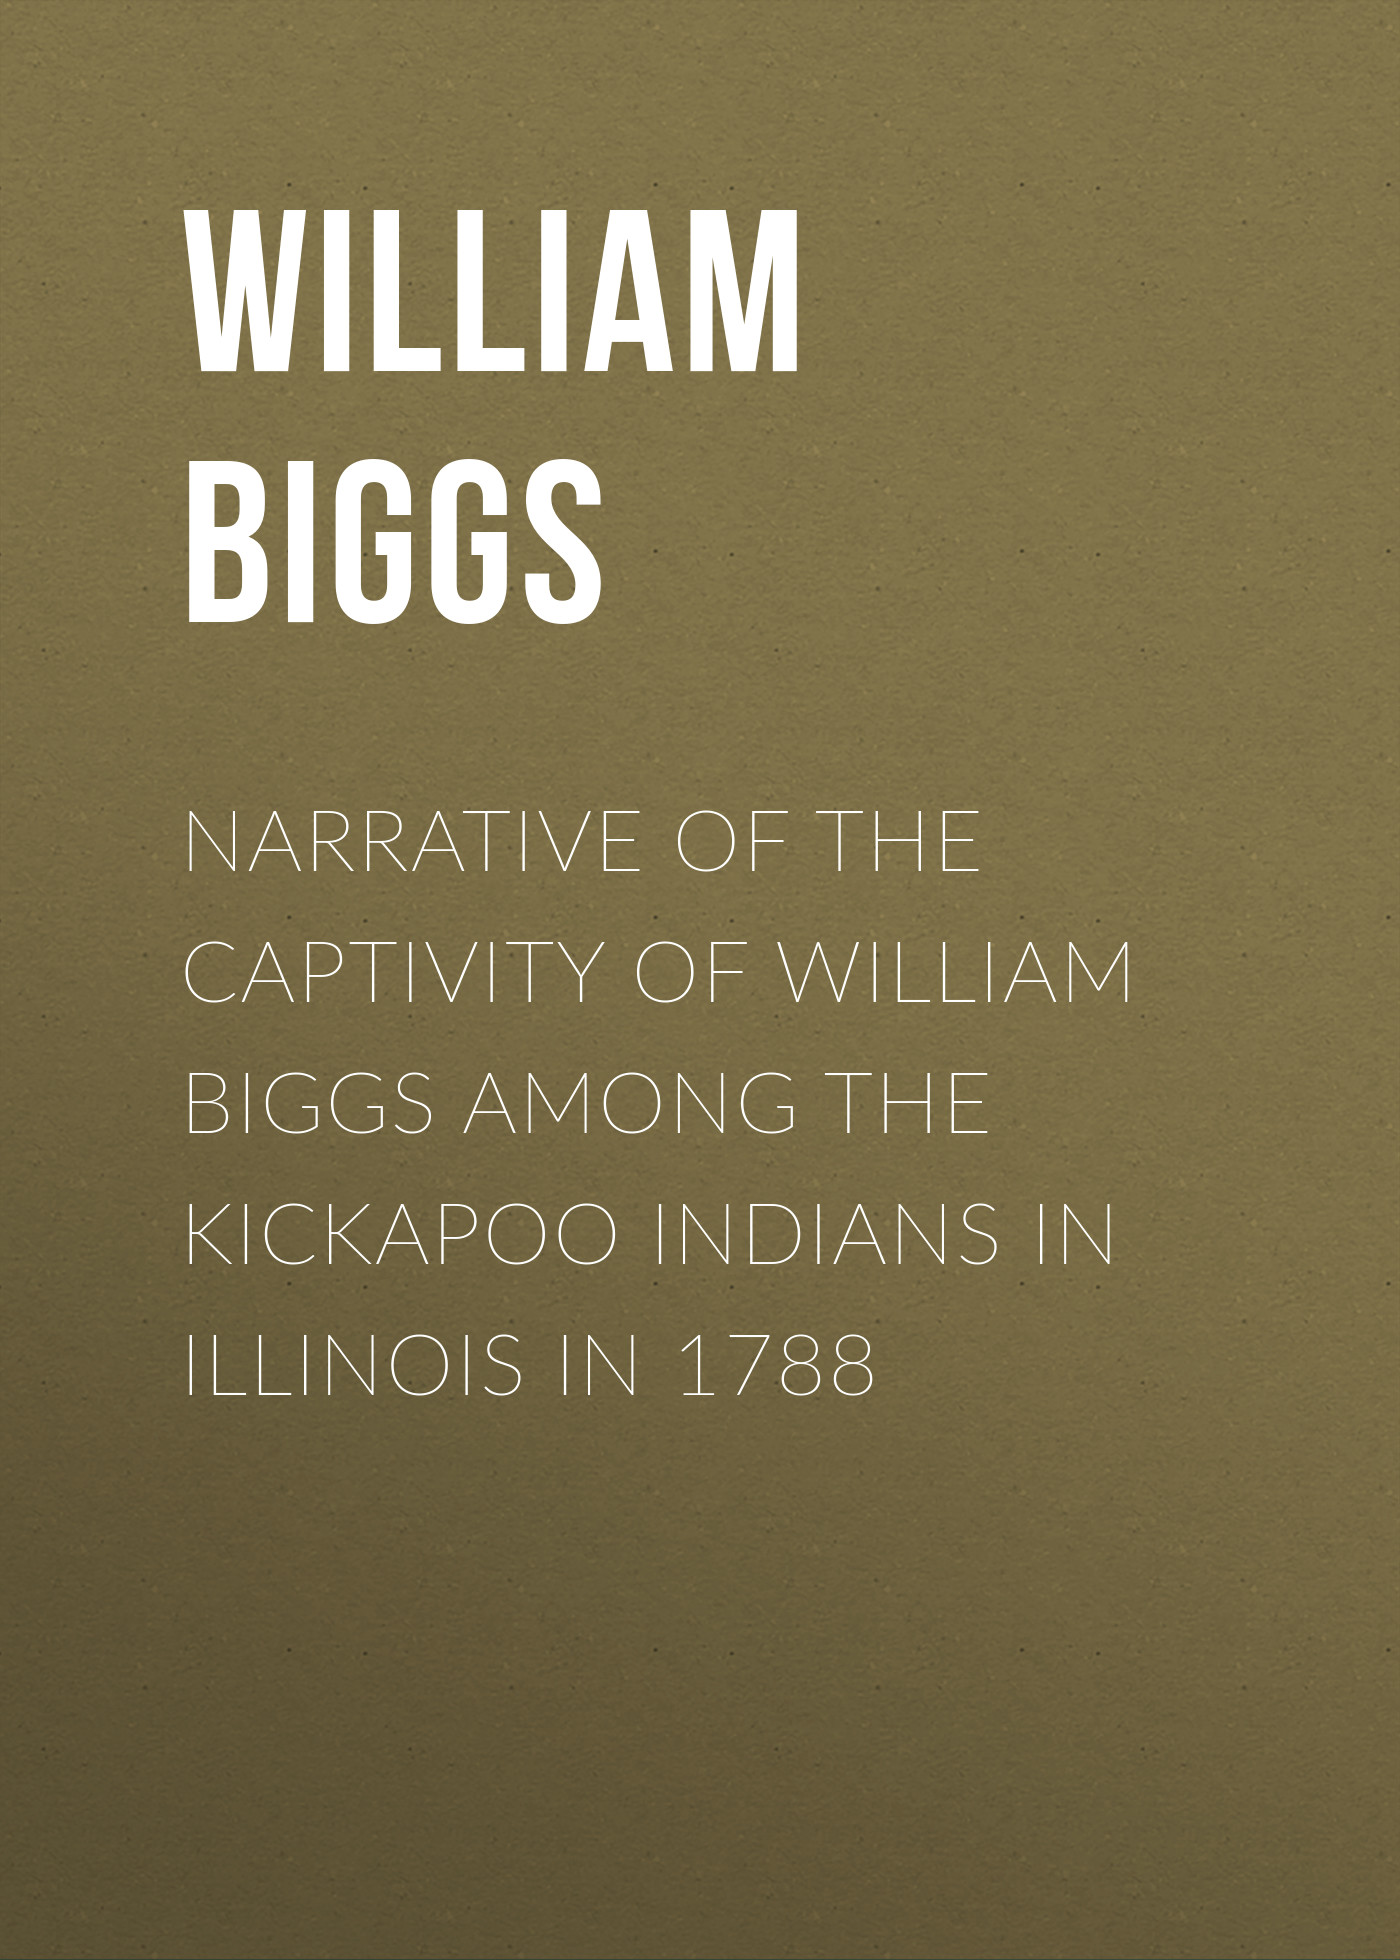 Biggs William Narrative of the Captivity of William Biggs among the Kickapoo Indians in Illinois in 1788